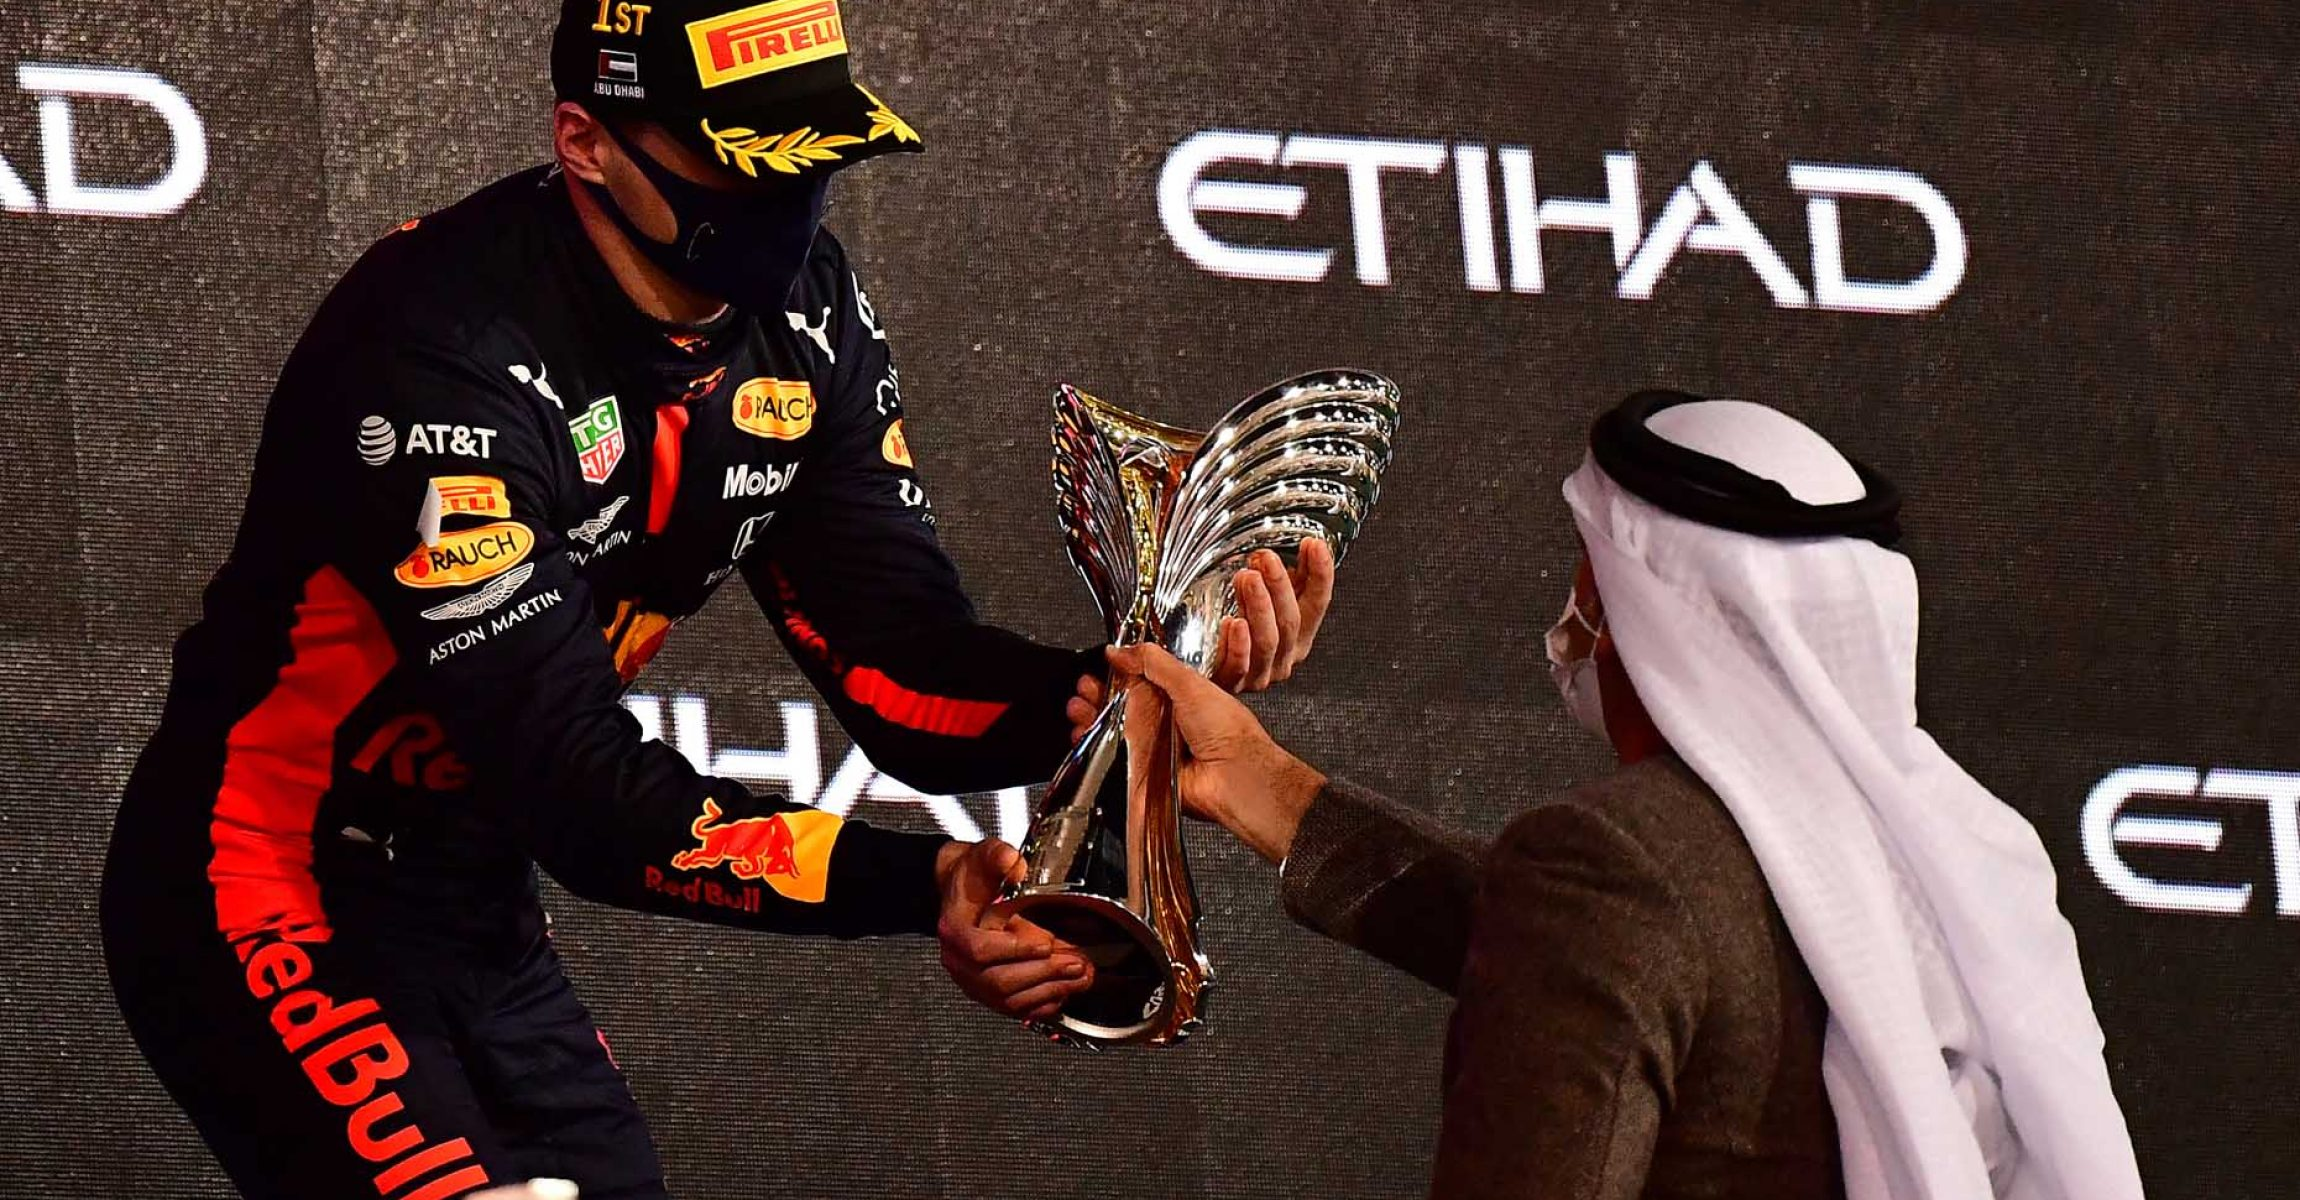 ABU DHABI, UNITED ARAB EMIRATES - DECEMBER 13: Race winner Max Verstappen of Netherlands and Red Bull Racing is presented with his trophy on the podium during the F1 Grand Prix of Abu Dhabi at Yas Marina Circuit on December 13, 2020 in Abu Dhabi, United Arab Emirates. (Photo by Giuseppe Cacace - Pool/Getty Images)